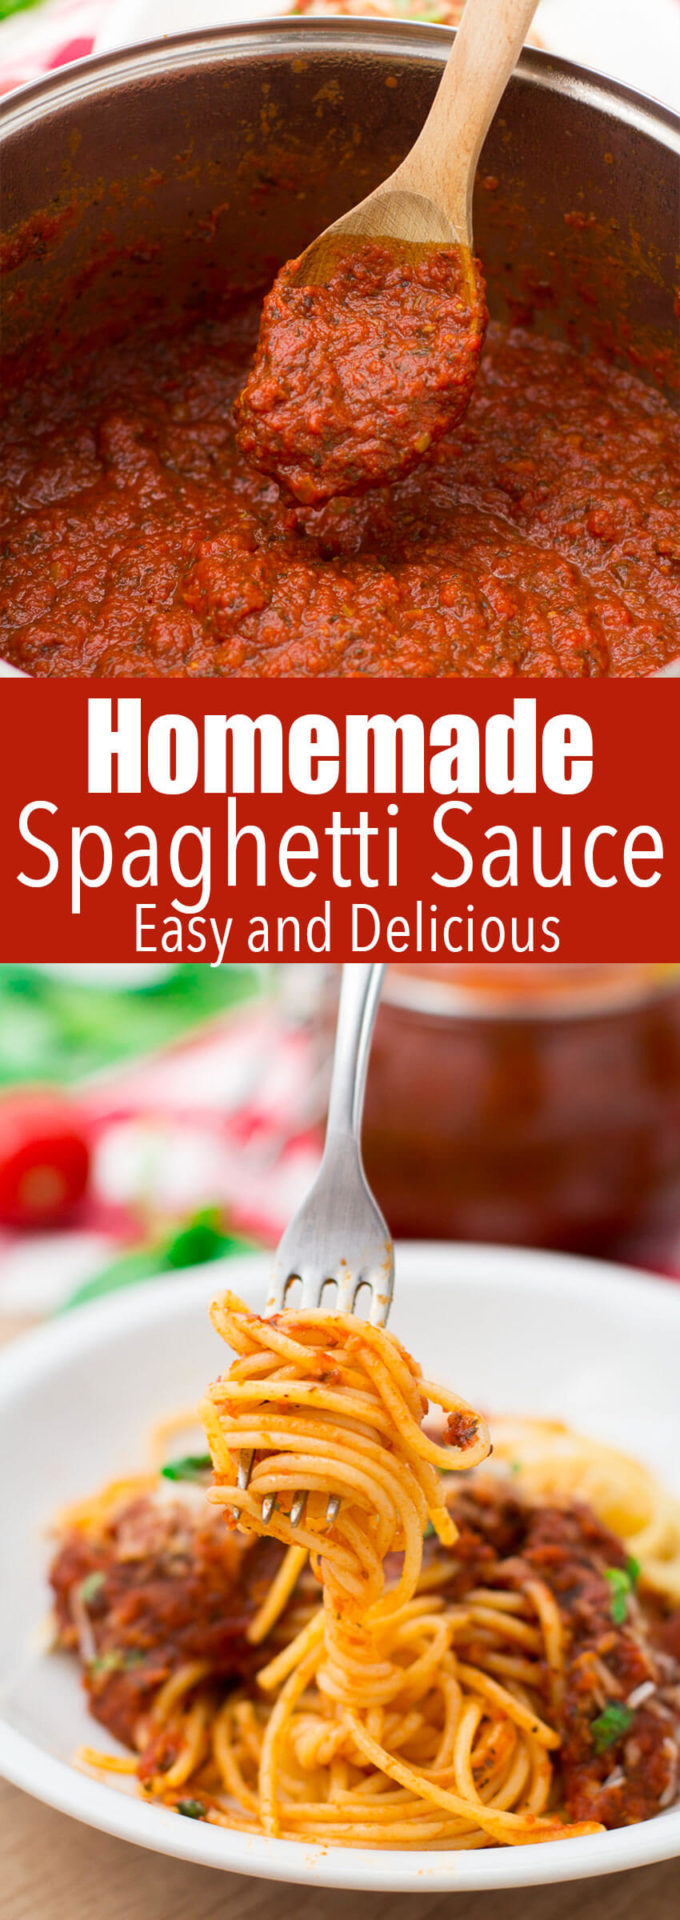 Homemade Spaghetti Sauce: This spaghetti sauce has a robust flavor, is easy to make, uses easy to find ingredients, and is absolutely delicious.